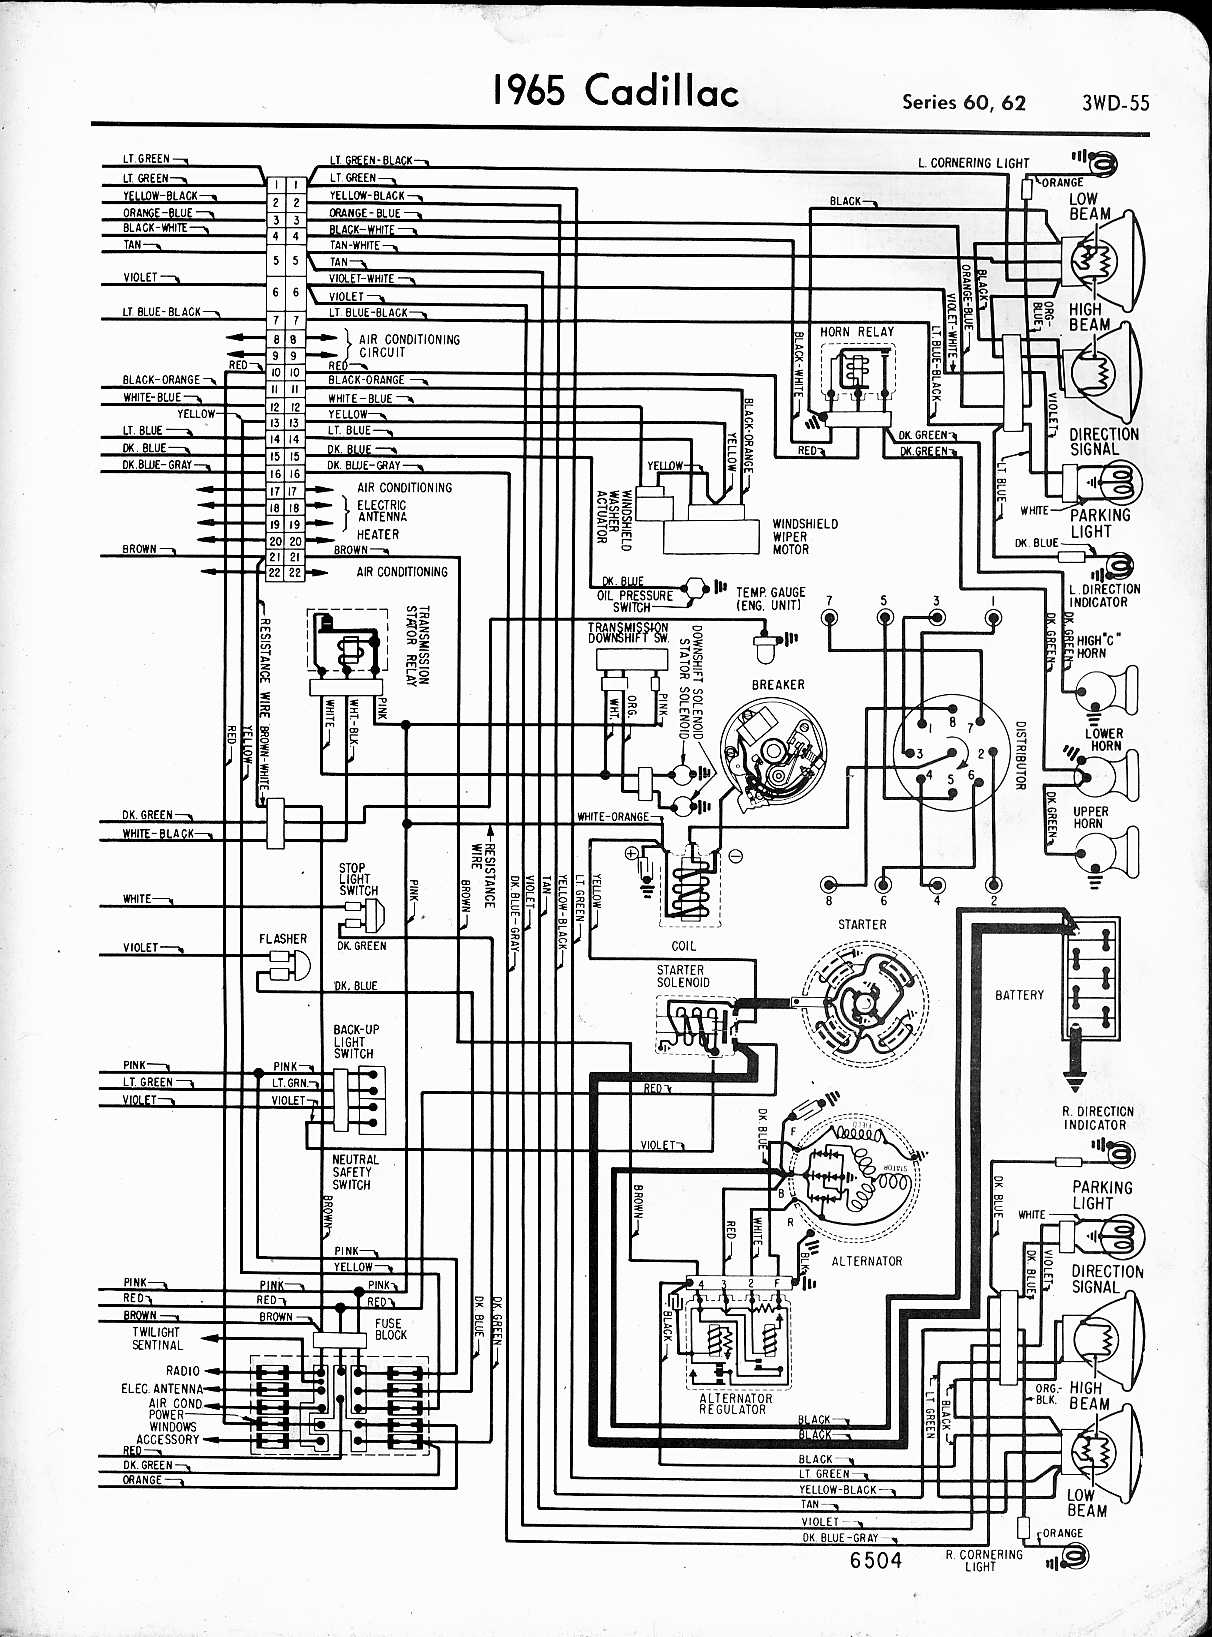 1955 cadillac series 62 wiring diagram example electrical wiring rh olkha co 1954 Cadillac Series 62 1965 Cadillac Series 62